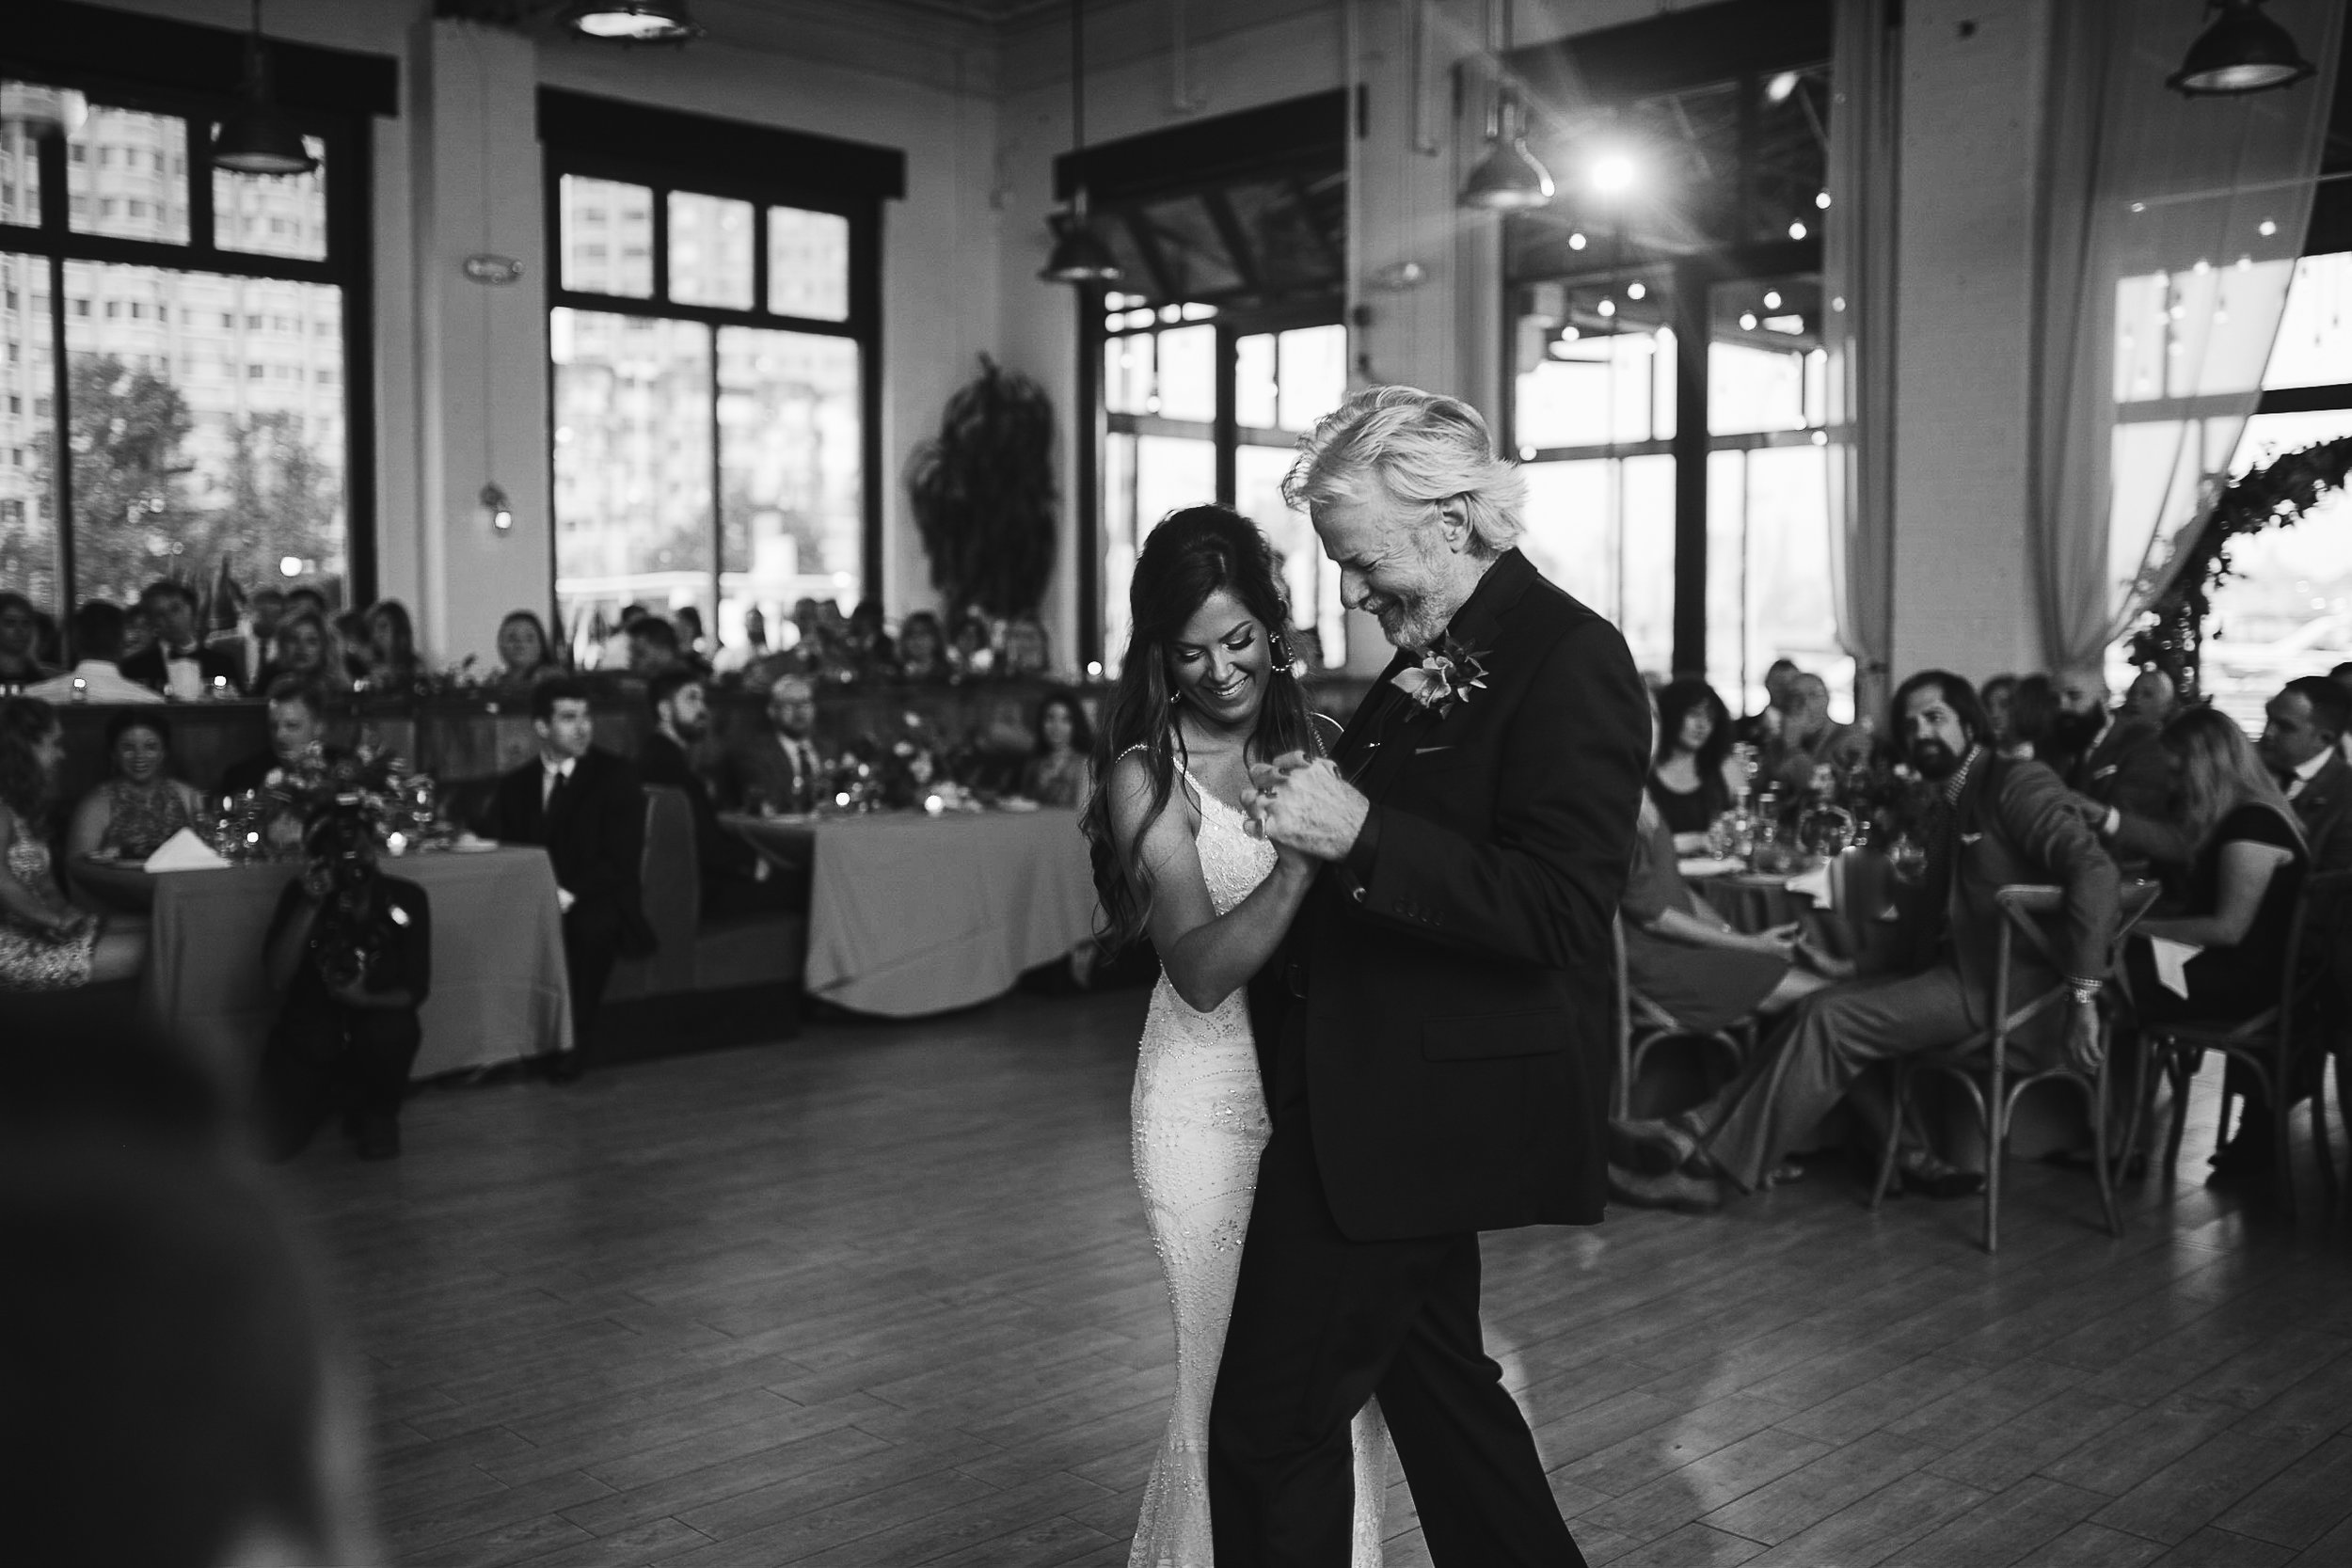 father-daughter-dance-Battello-Jersey-city-wedding-117.jpg